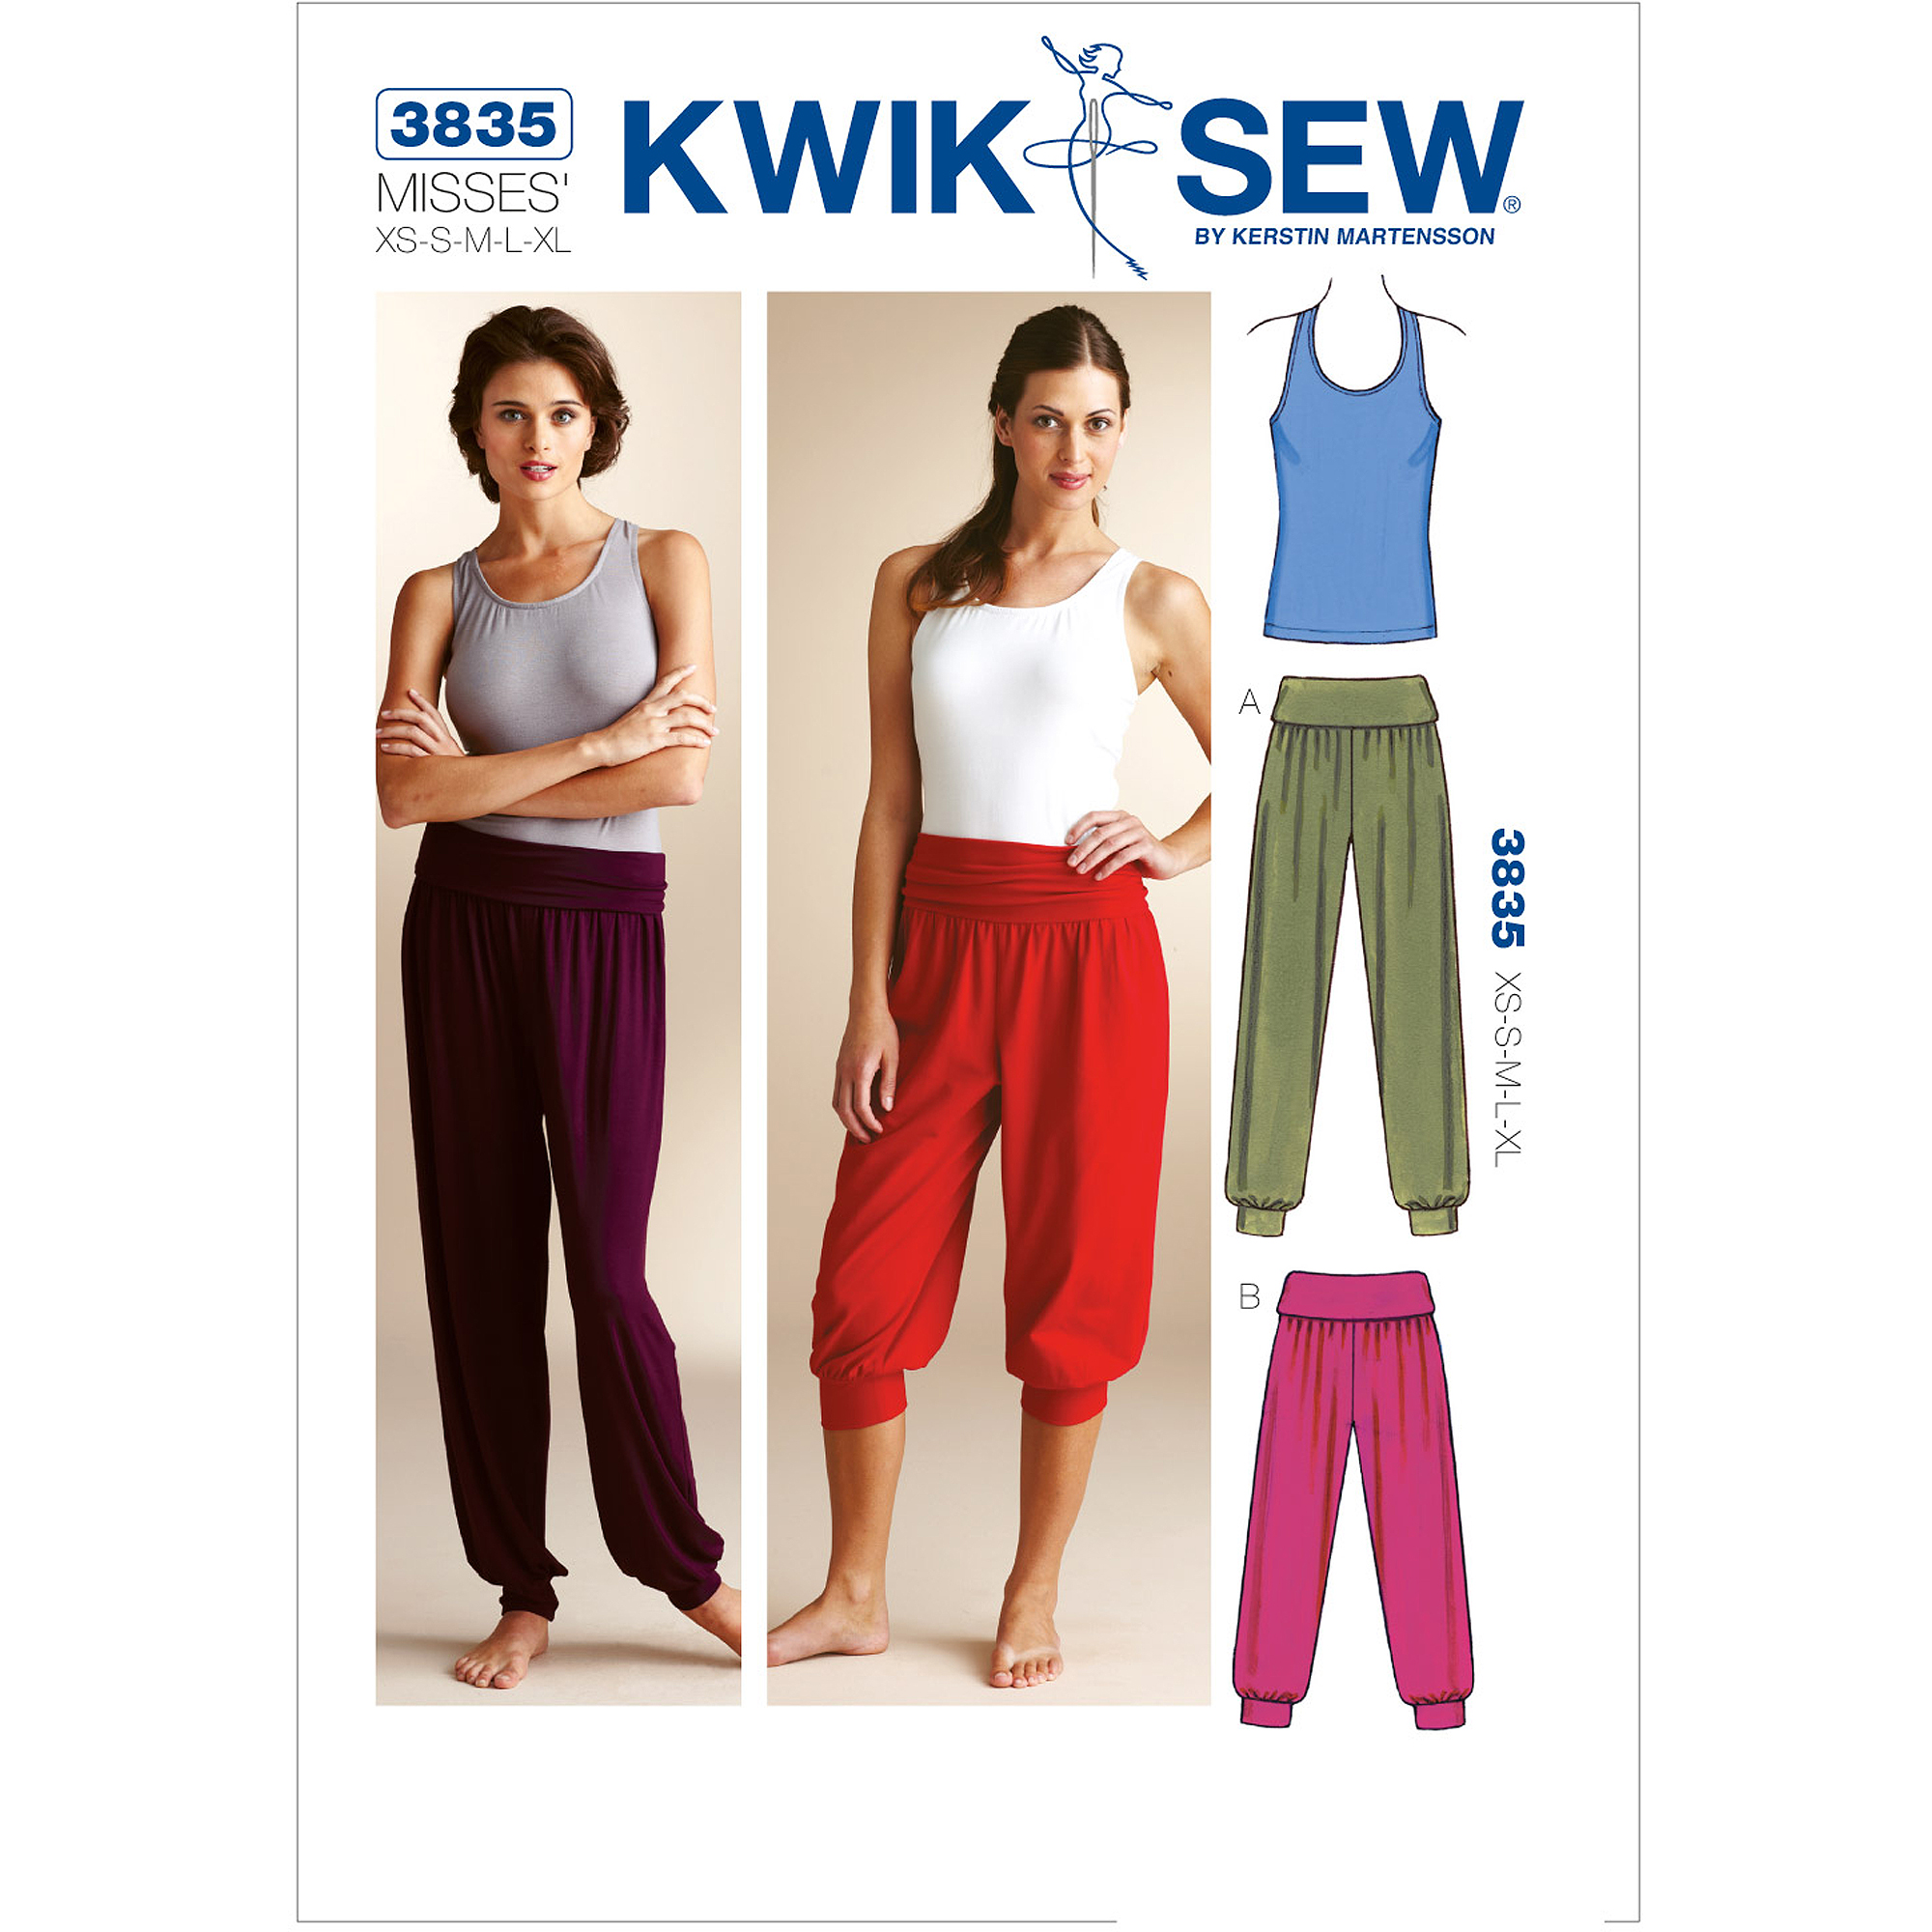 Kwik Sew Pattern Top and Pants, (XS, S, M, L, XL)